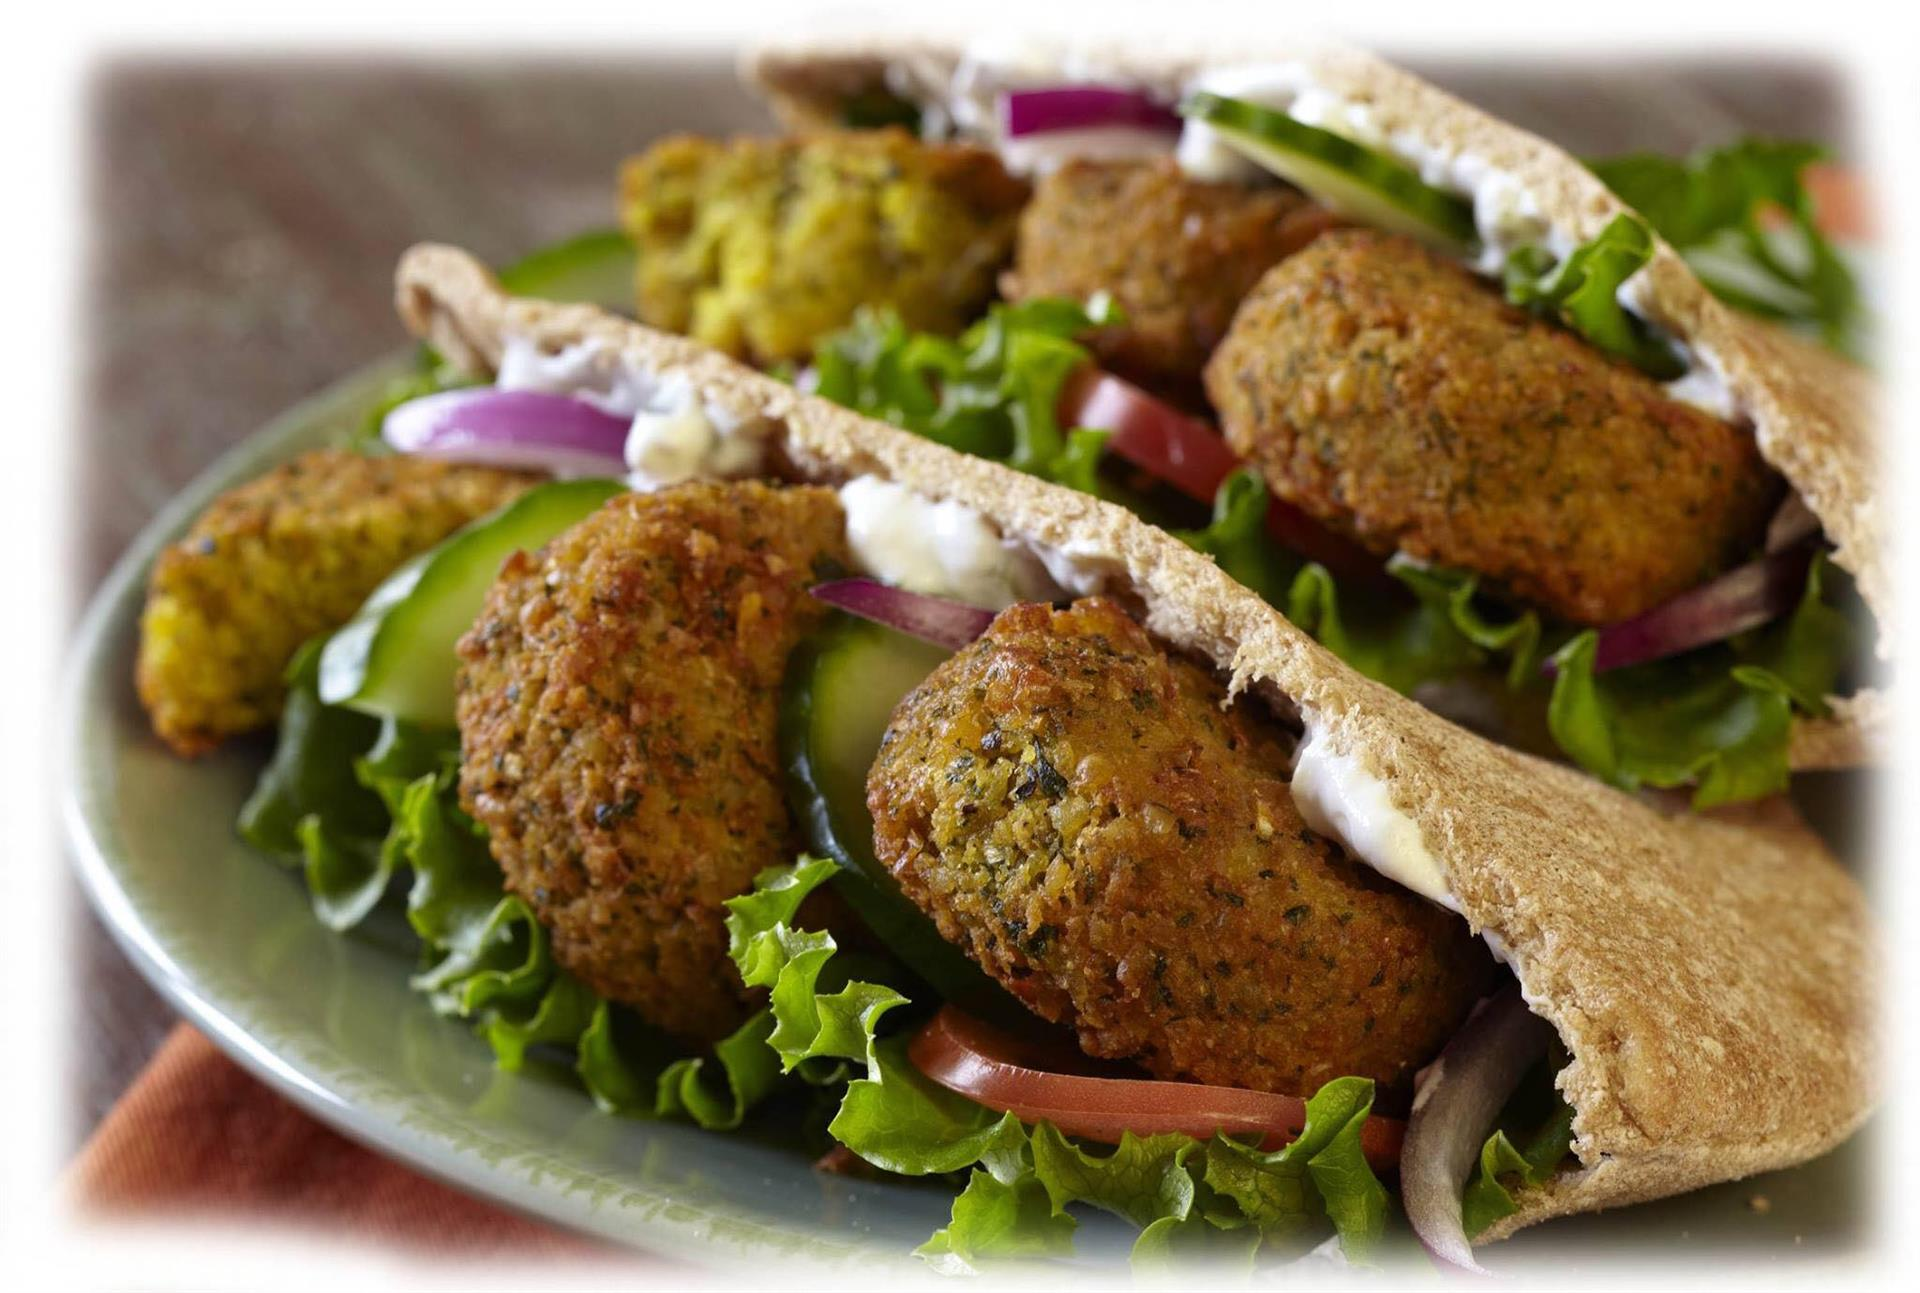 Two pita pockets stuffed with falafels, lettuce, tomato, onion and cucumbers.